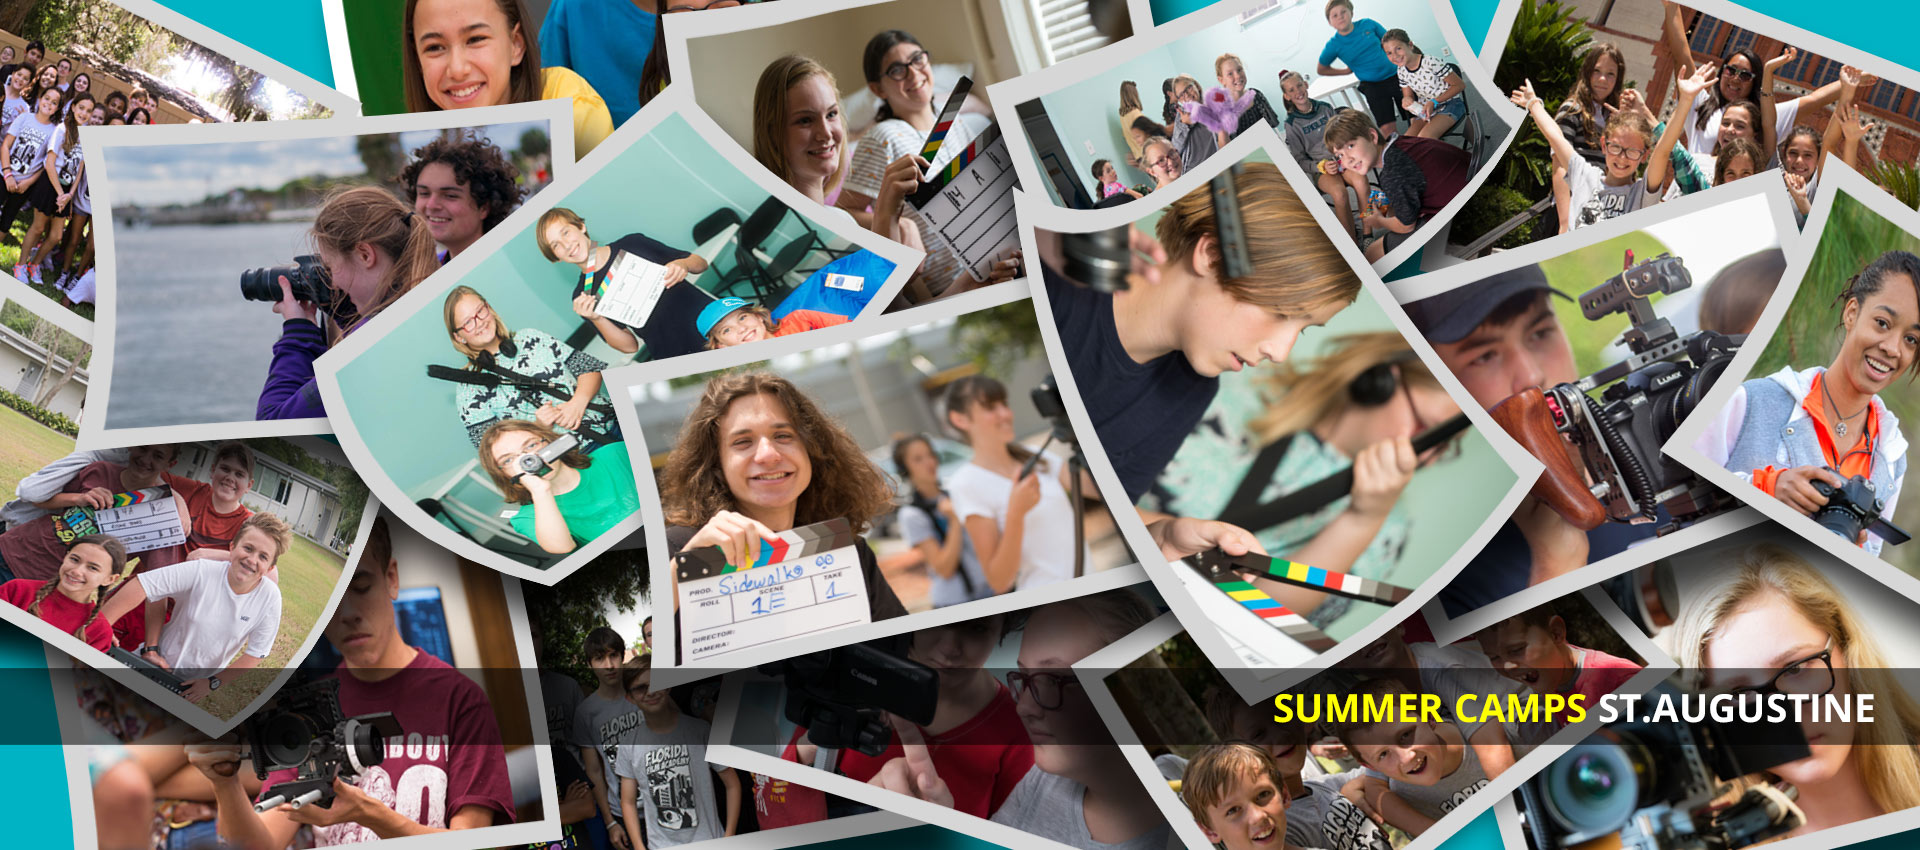 Summer Camps St Augustine